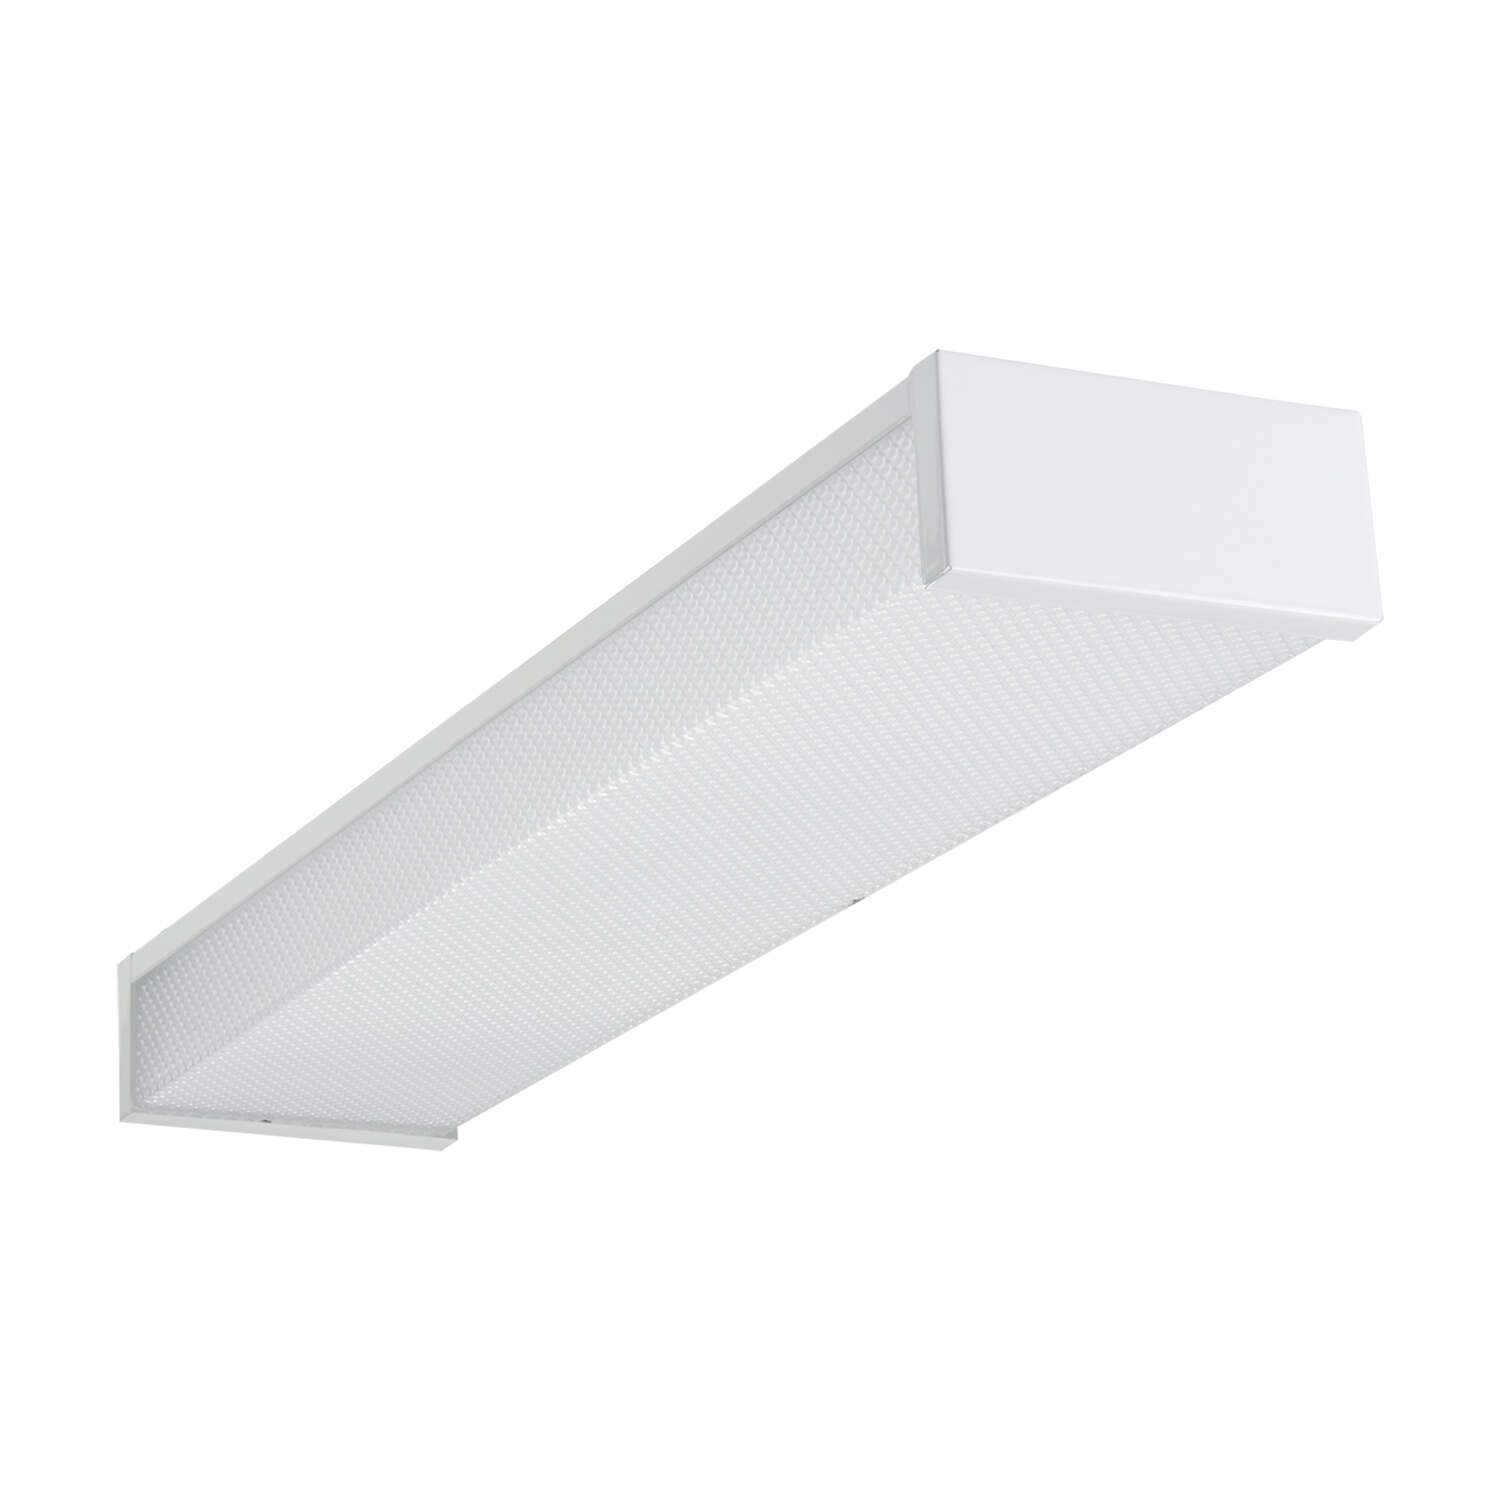 Metalux 15.8 watt 24 in. LED Wraparound Light Fixture